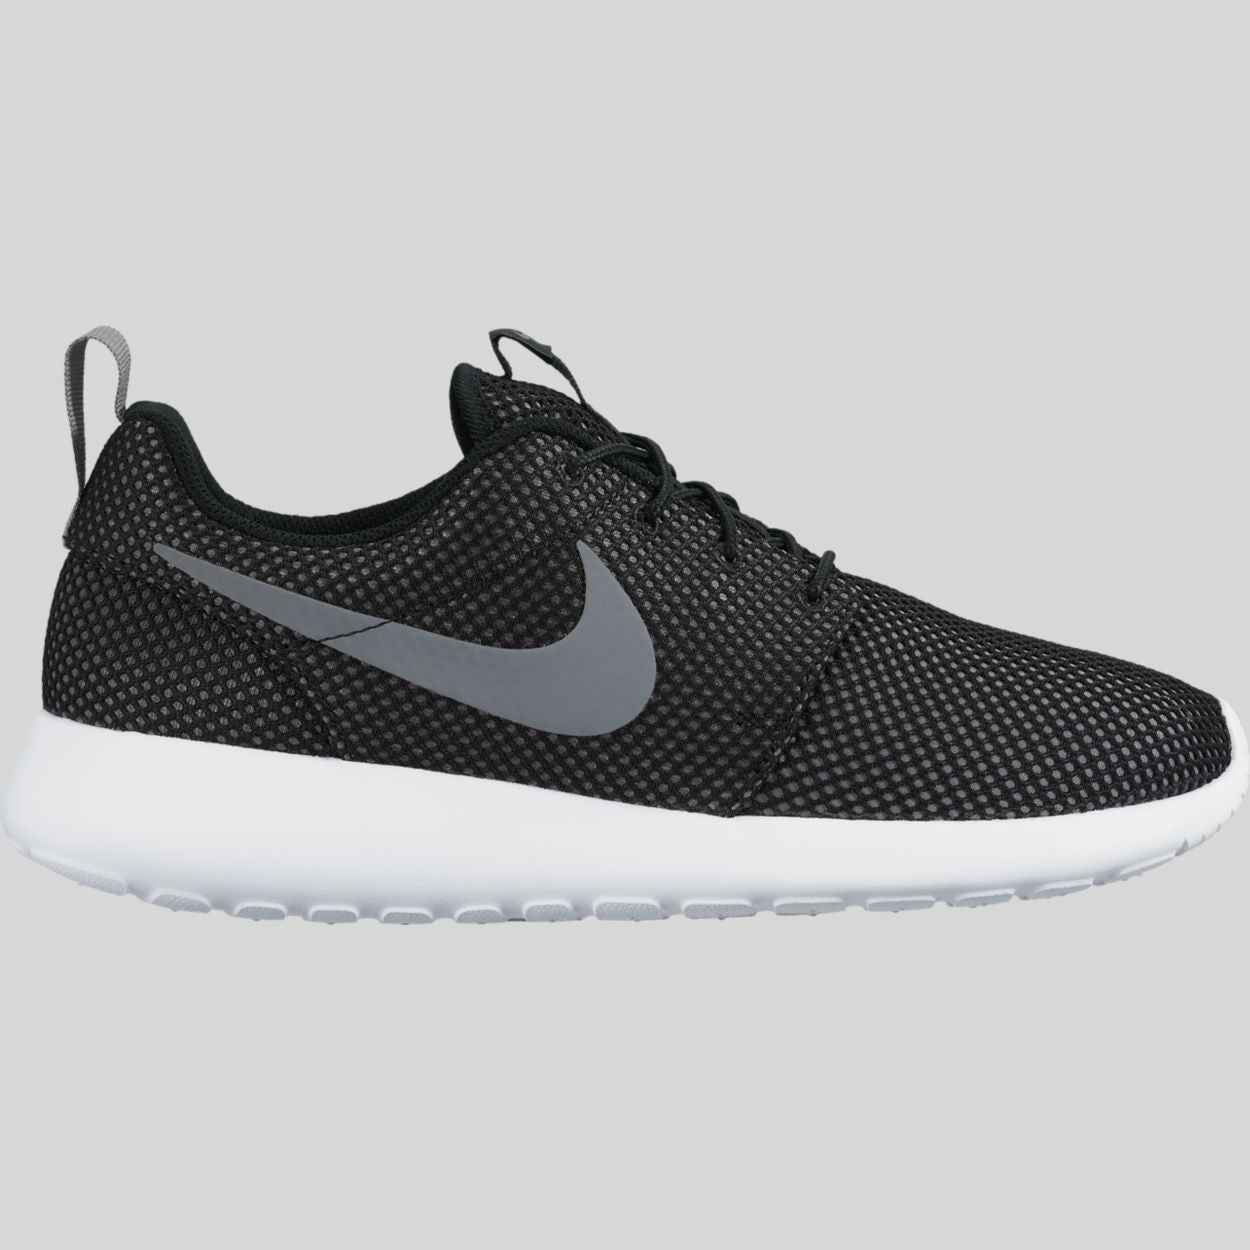 nike roshe one cool grey/black/white